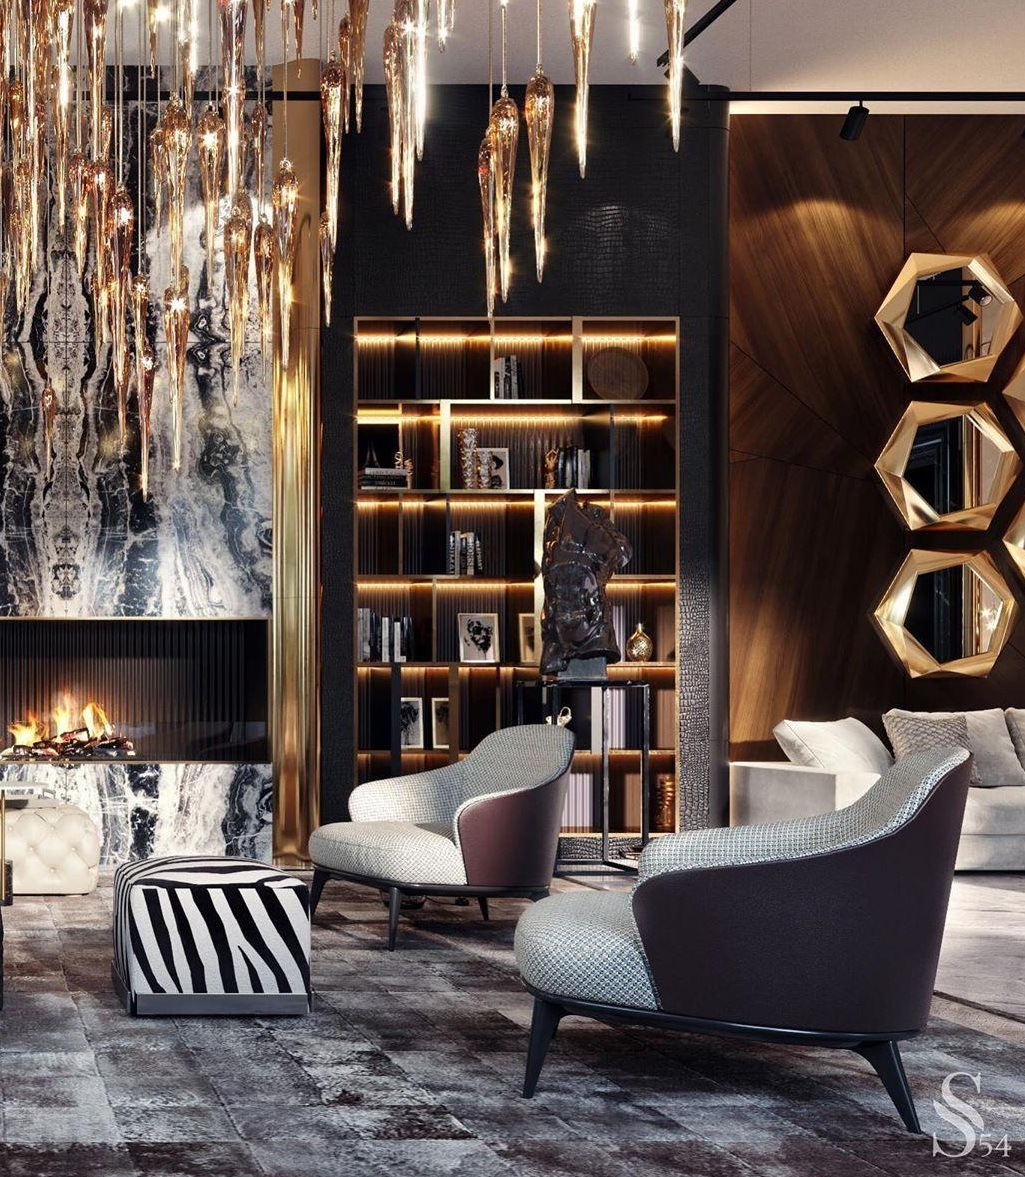 Maximalist and Luxurious Interior Design For Living Room